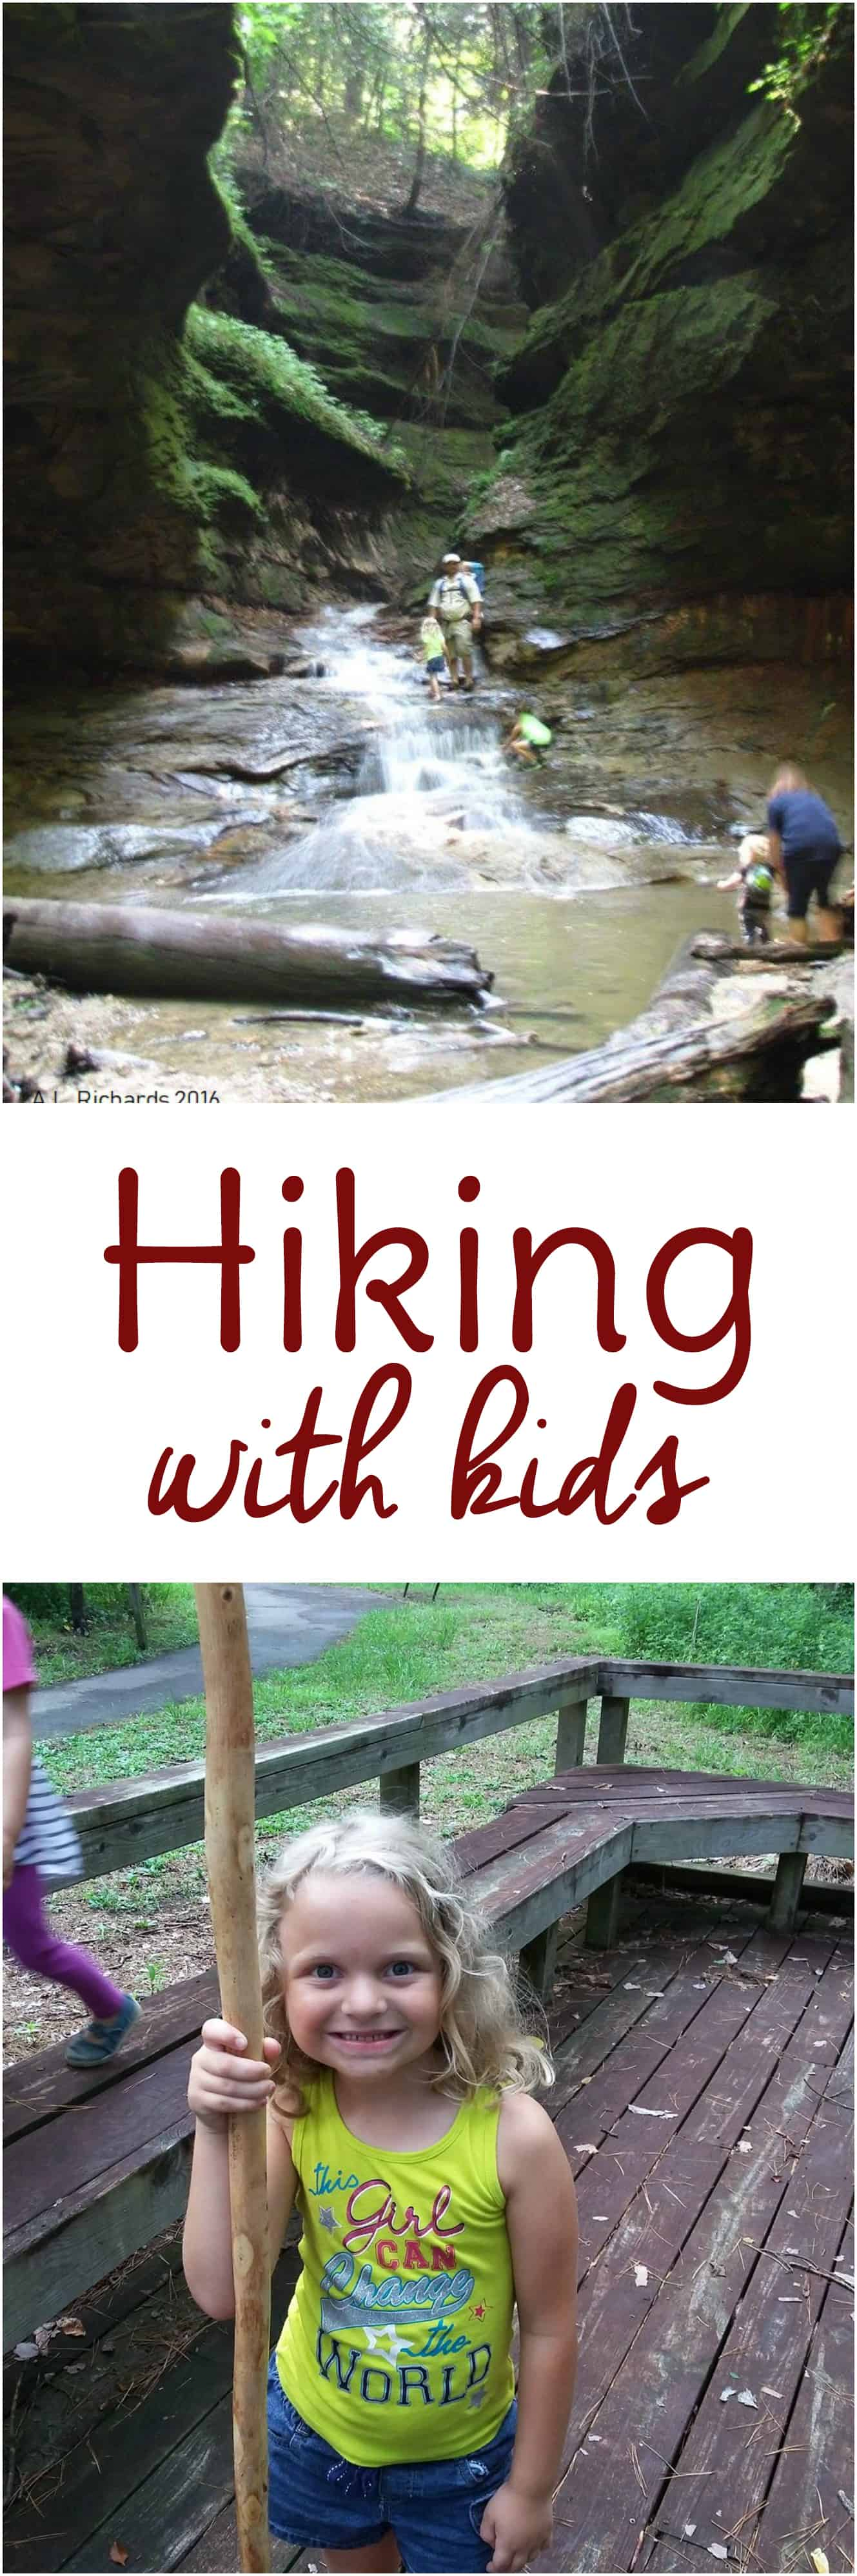 Hiking with kids is a great way to have outdoor family fun. Everything you need to know for hiking with baby or hiking with toddlers too!